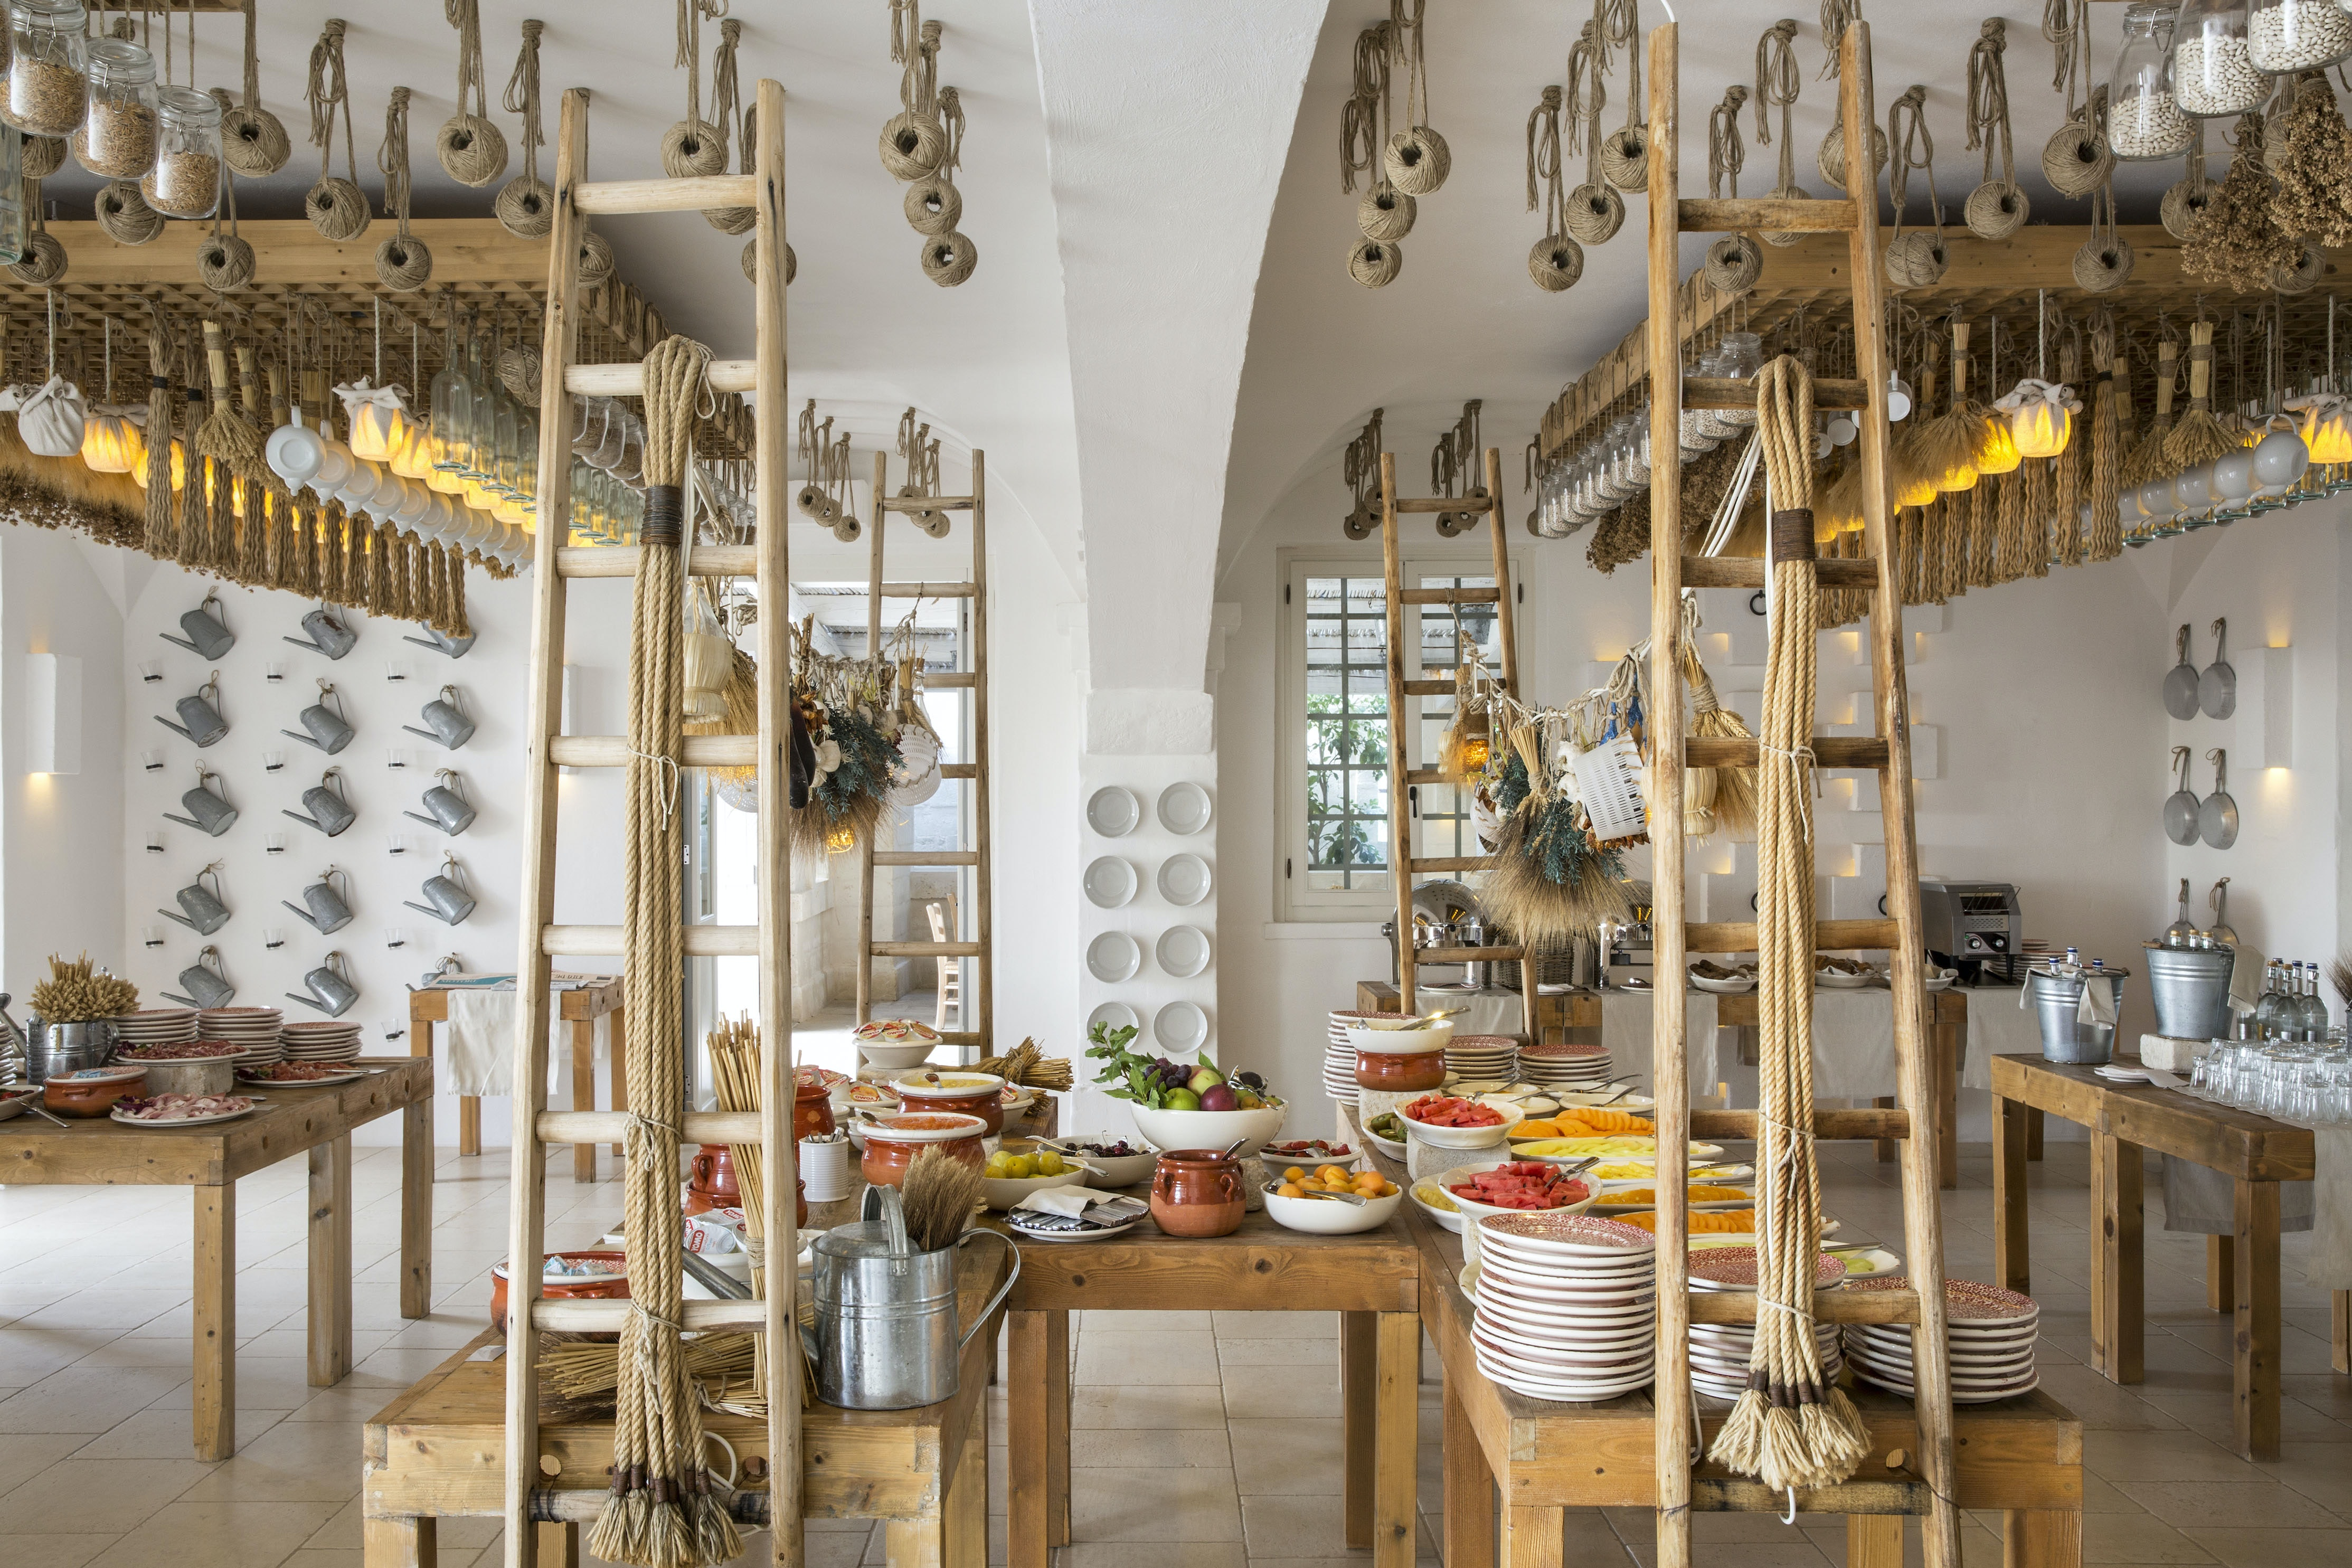 The owner of Borgo Egnazia, a resort overlooking the Adriatic Sea in southern Italy, recommends treating guests to something unique, like a special family recipe.